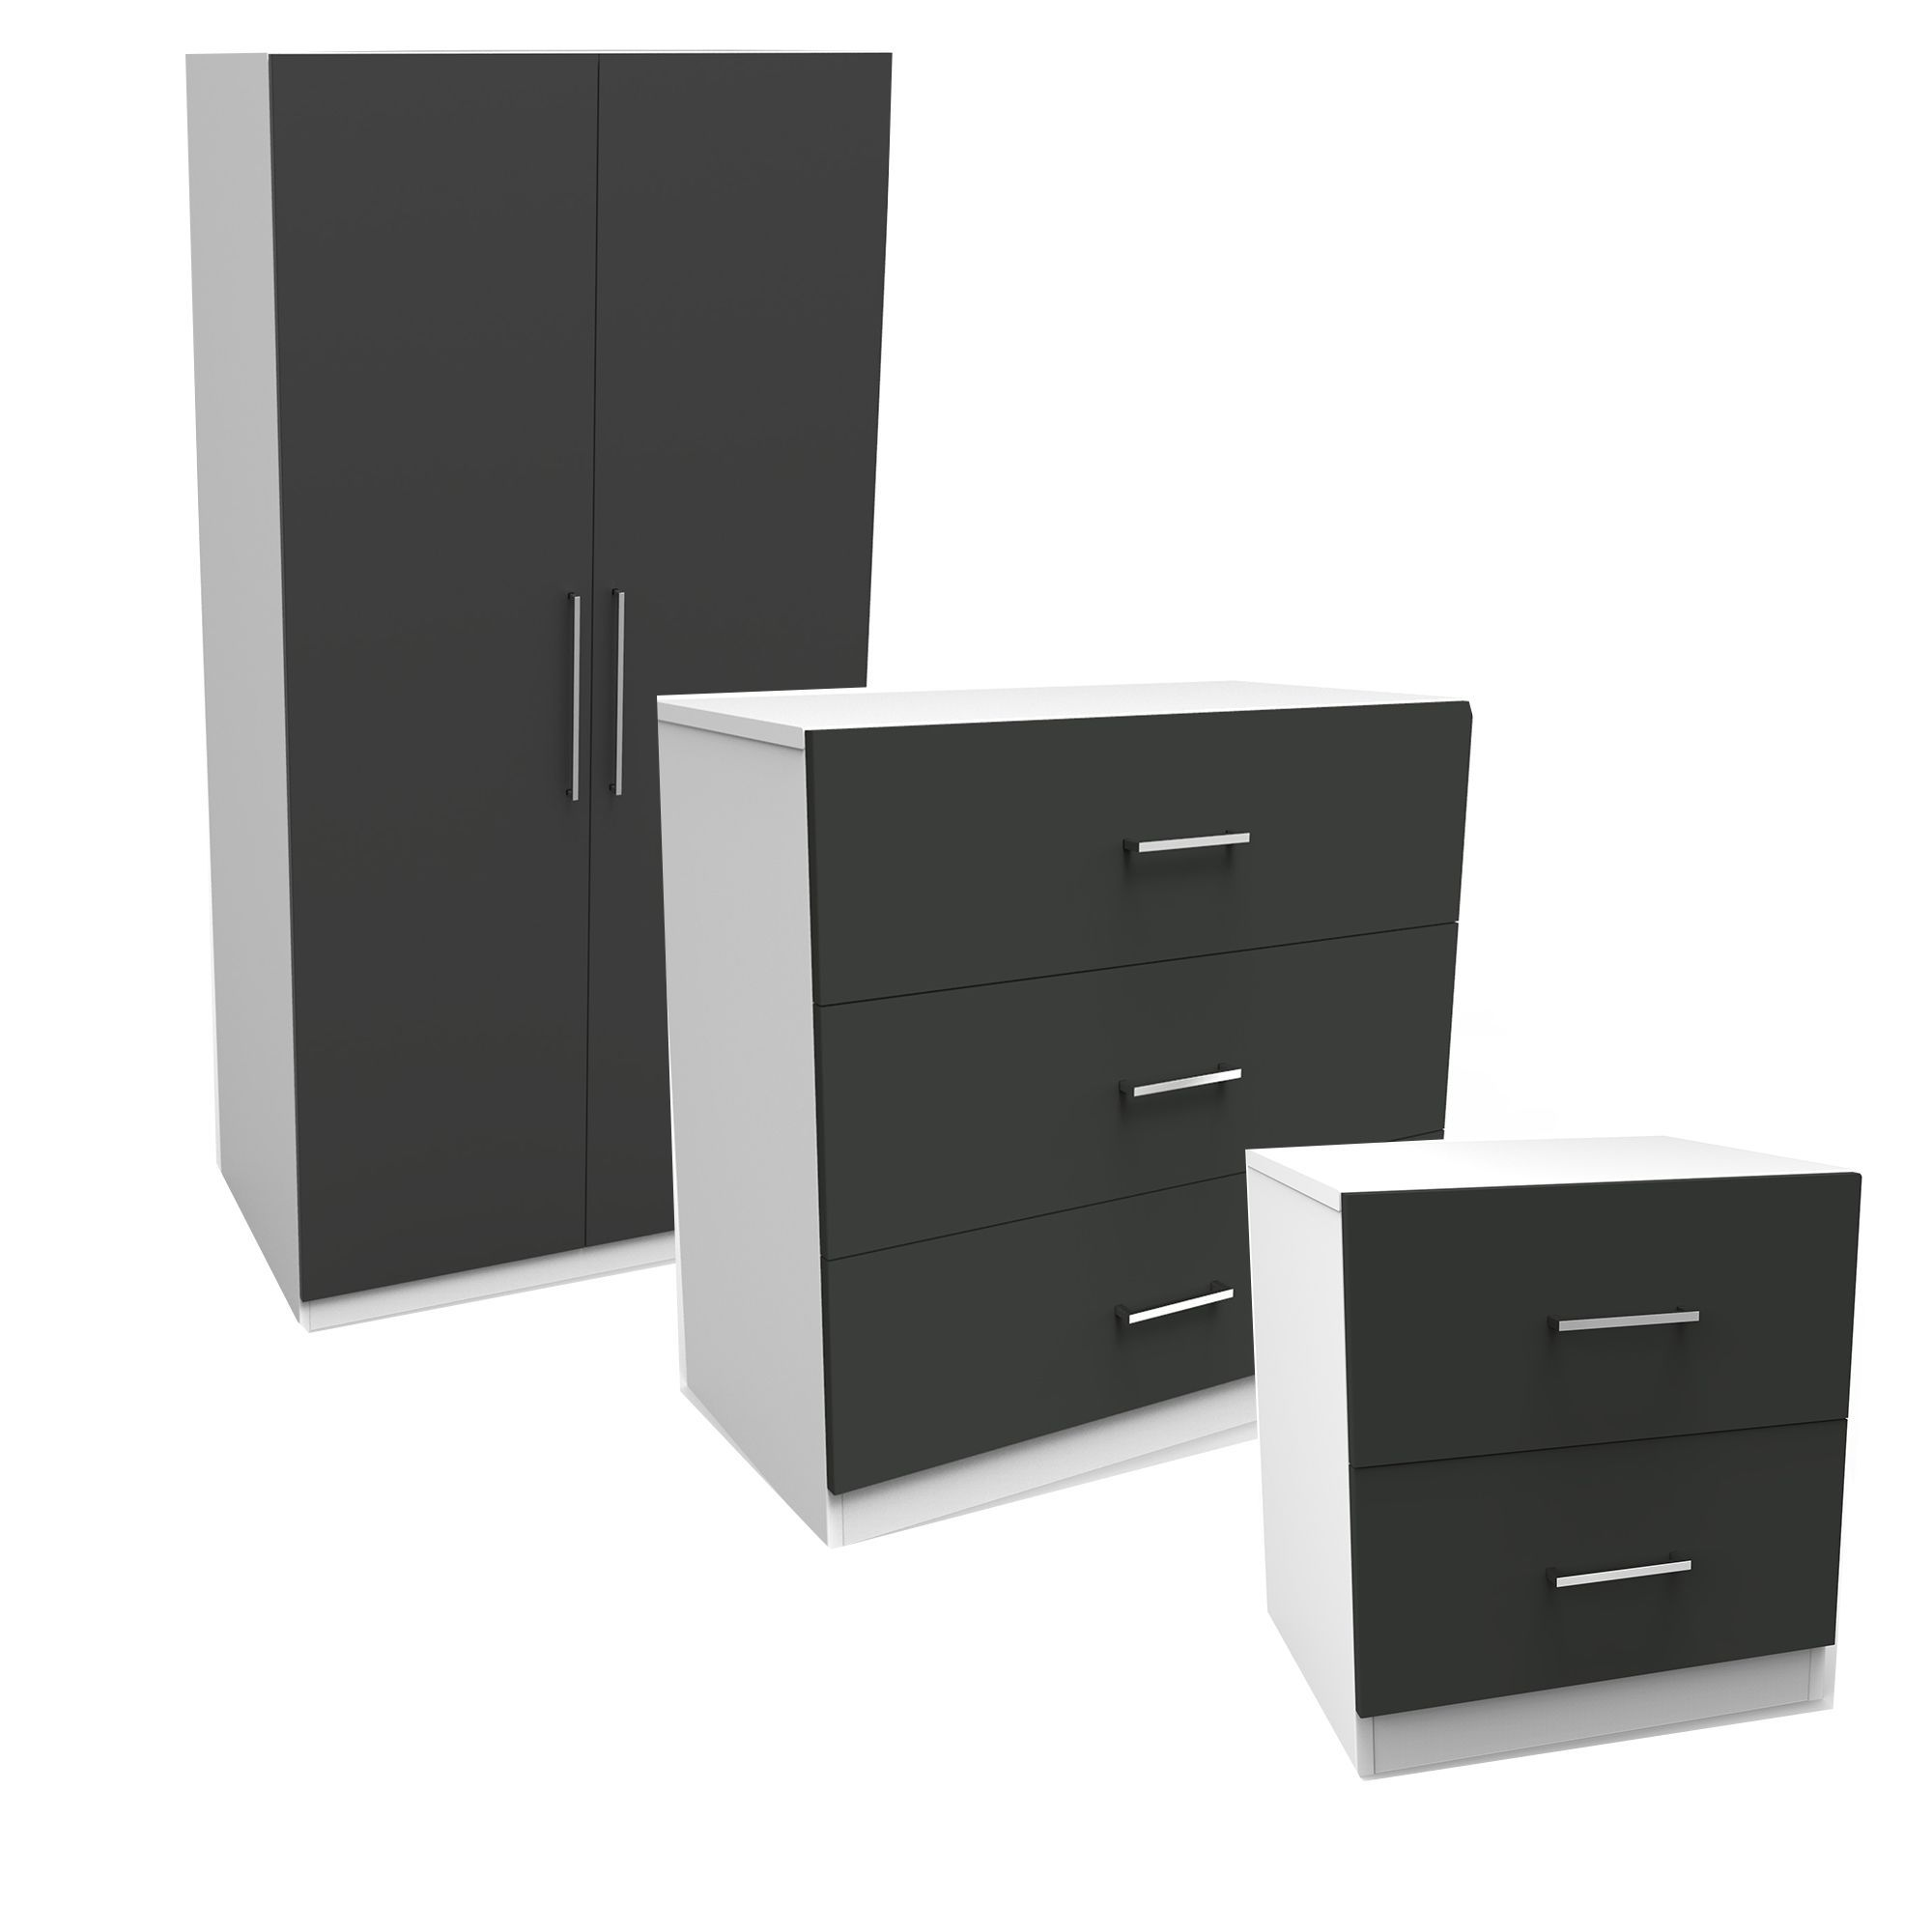 Darwin Gloss Anthracite & White 3 Piece Bedroom Furniture Set